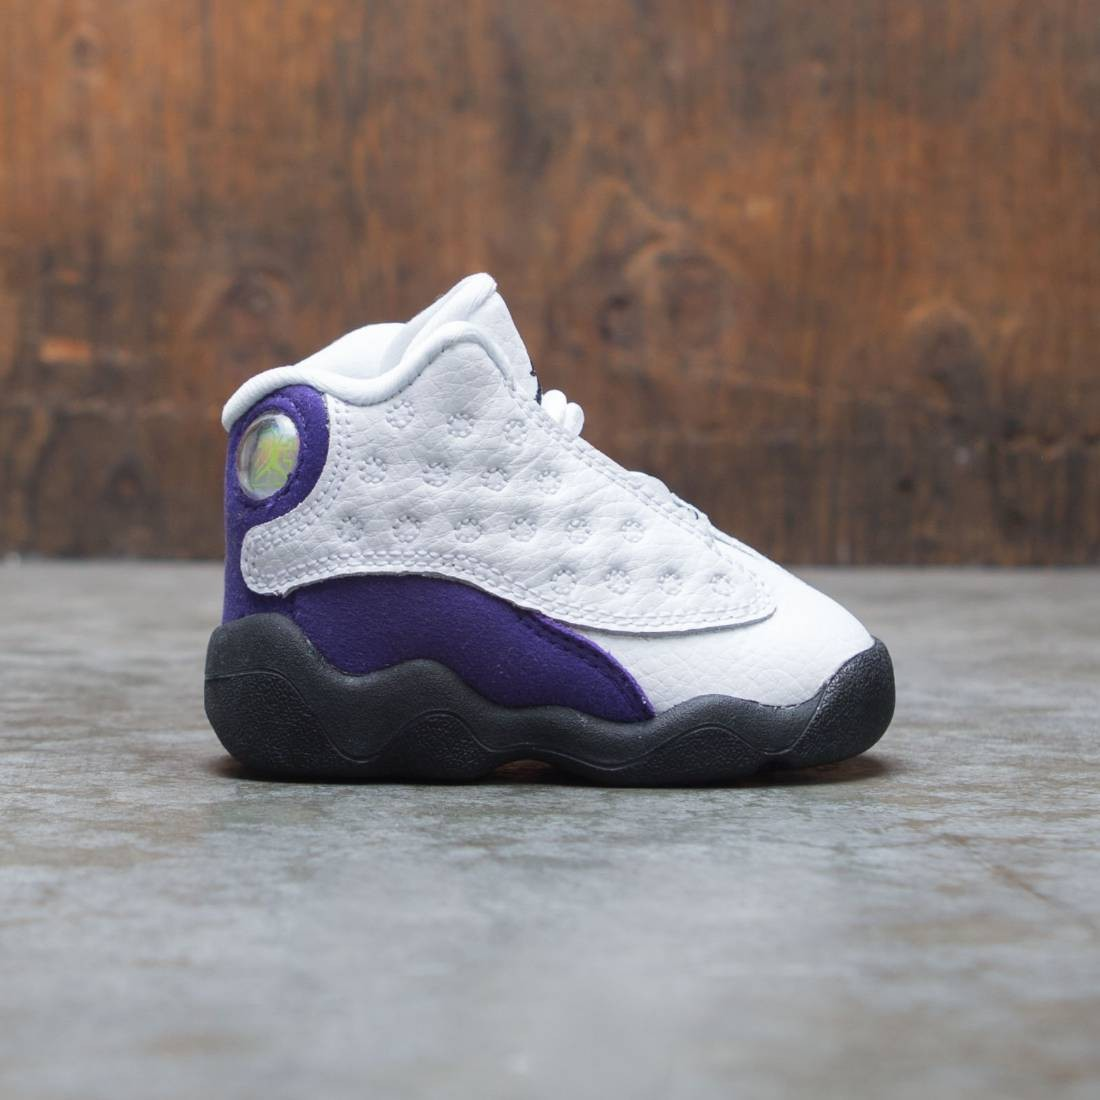 brand new 9d869 ea237 Jordan Toddlers 13 Retro (white / black-court purple-university gold)